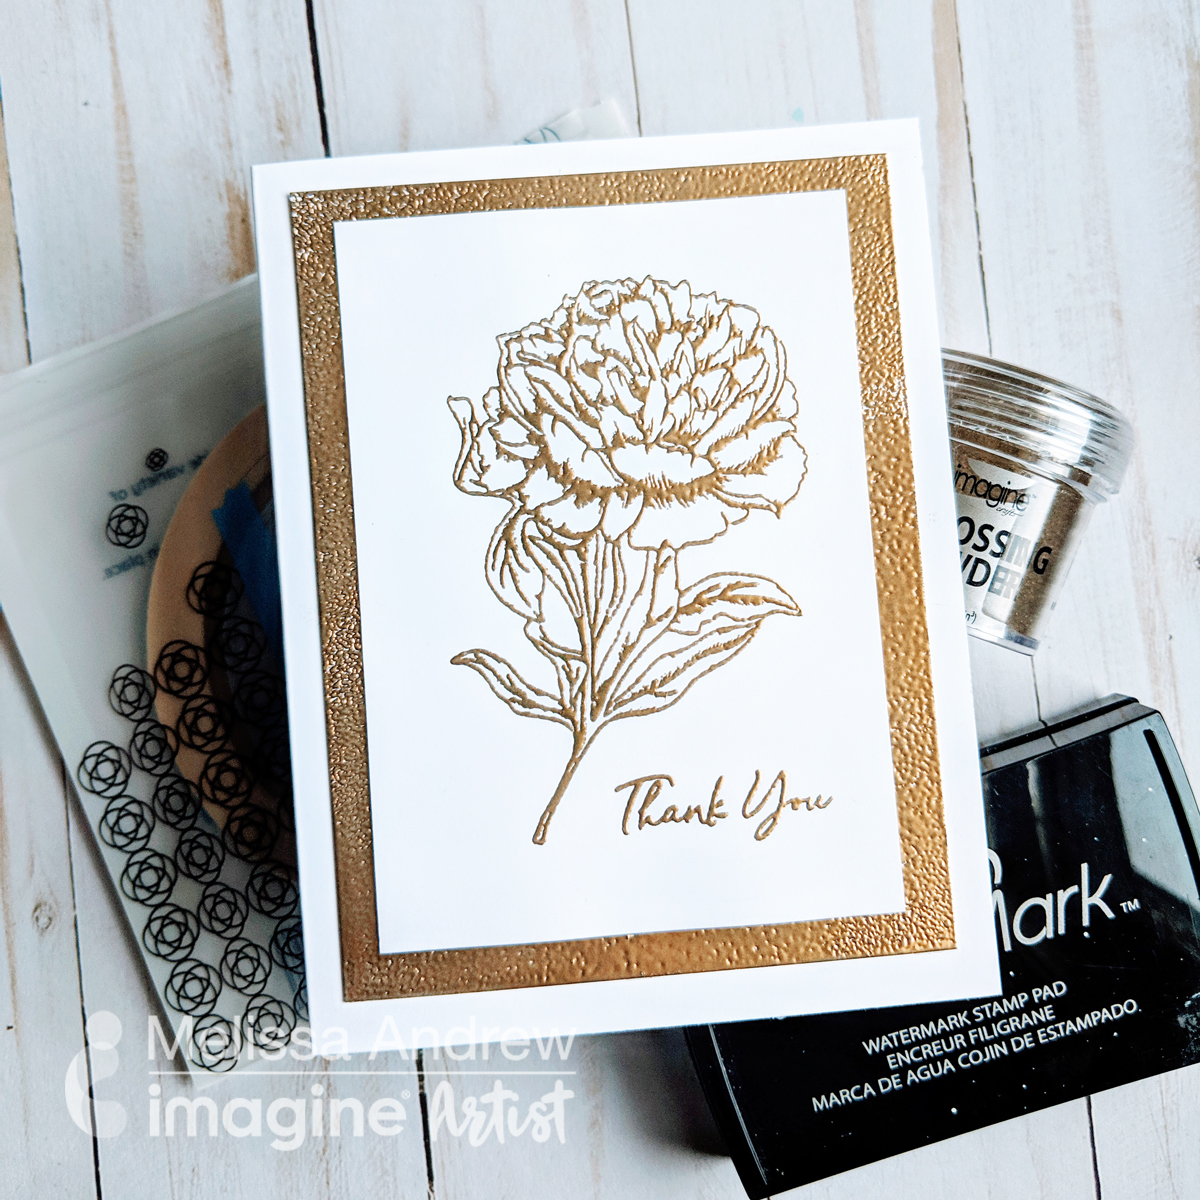 Handmade wedding thank you note featuring gold embossing.